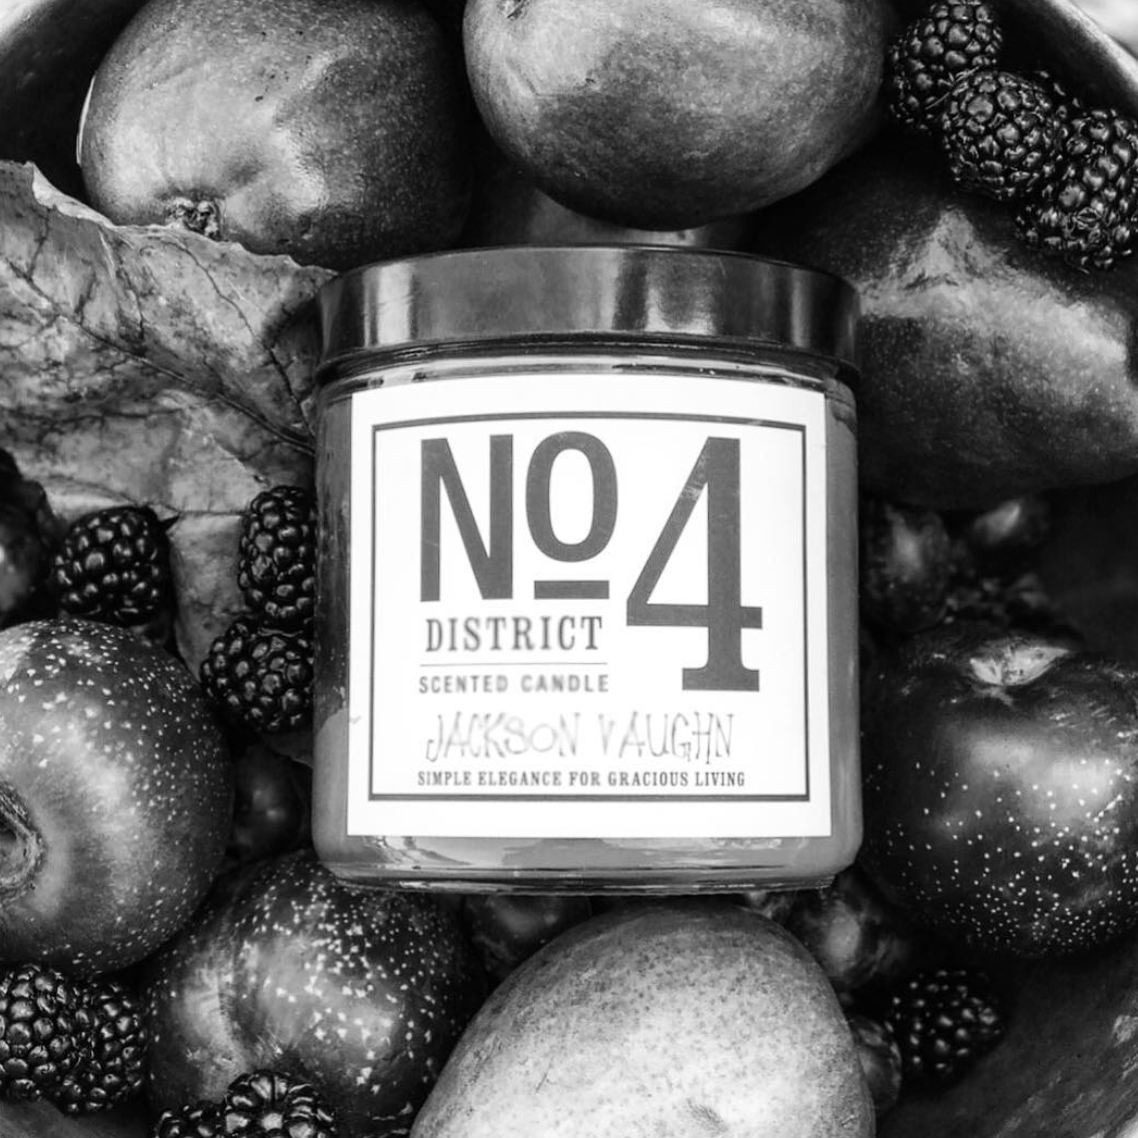 Society Jackson Vaughn No. 4 District Candle ($32) - Nothing quite sets the scene for the season like a good candle. It's nearly impossible to just pick one from this Bishop Arts shop, but Jackson Vaughn's No. 4 is a must—the notes of warm teakwood and amber pretty much nail that autumn vibe.